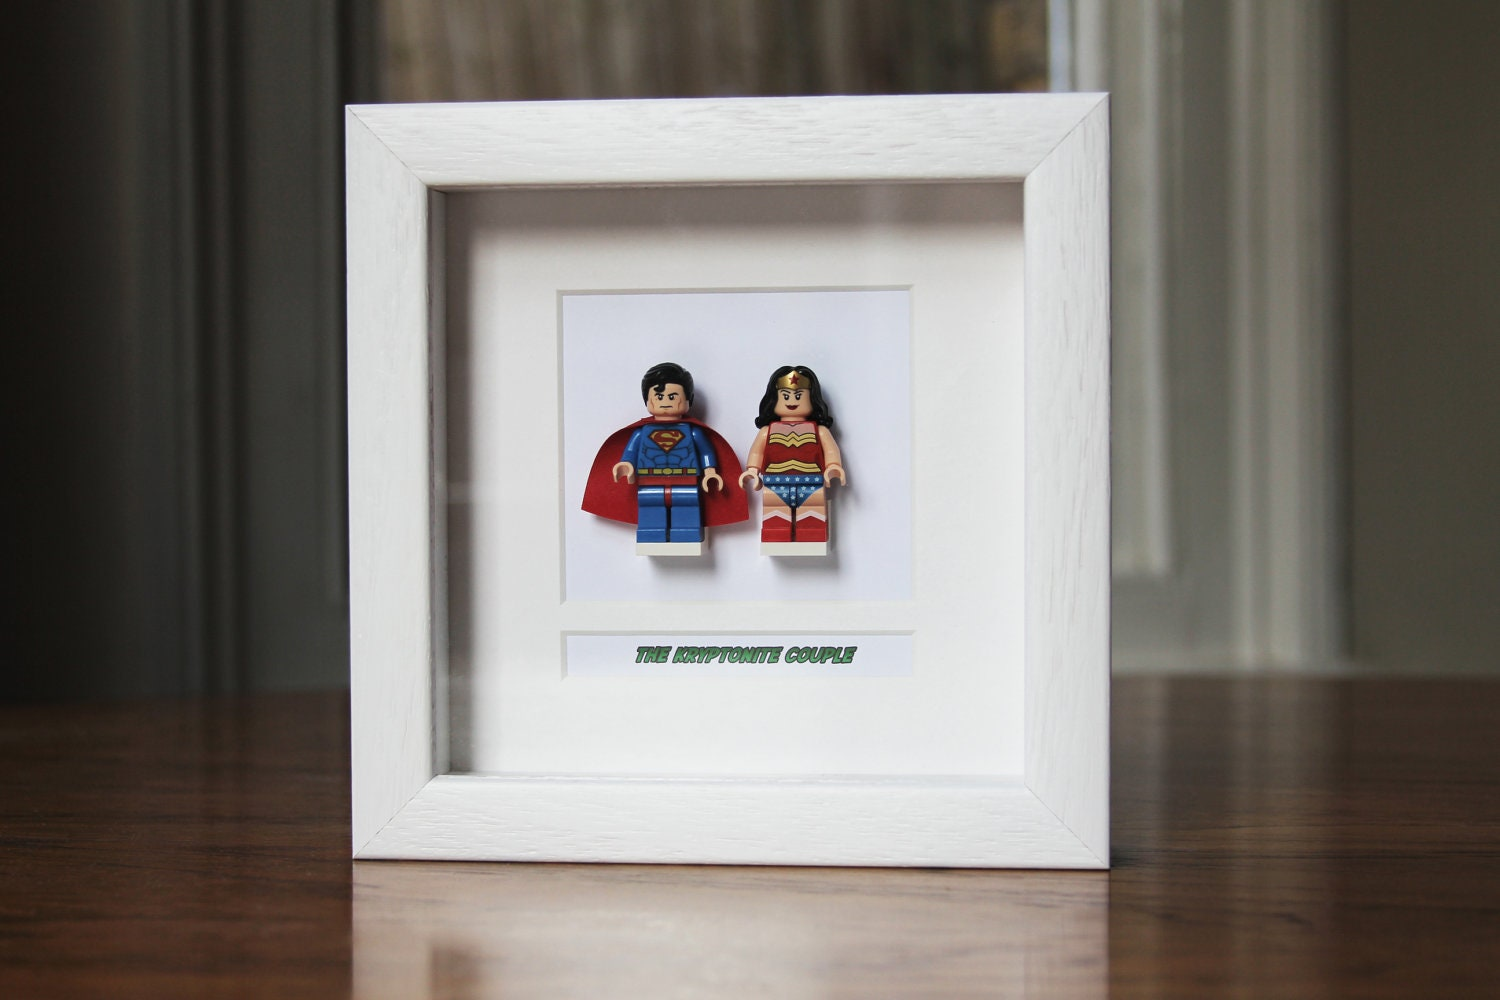 SALE Discounts on all frames Superheroes Framed Mini | Etsy